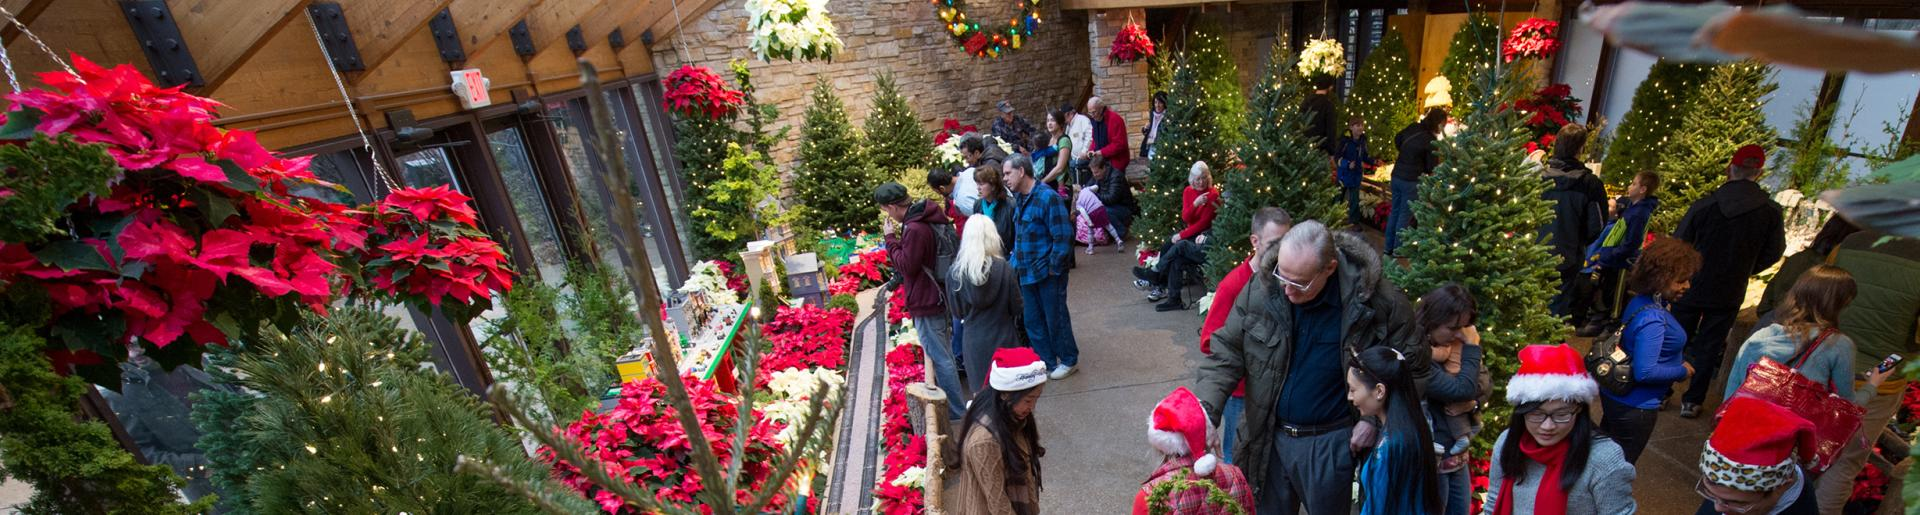 Holiday decorations inside Olbrich Botanical Gardens